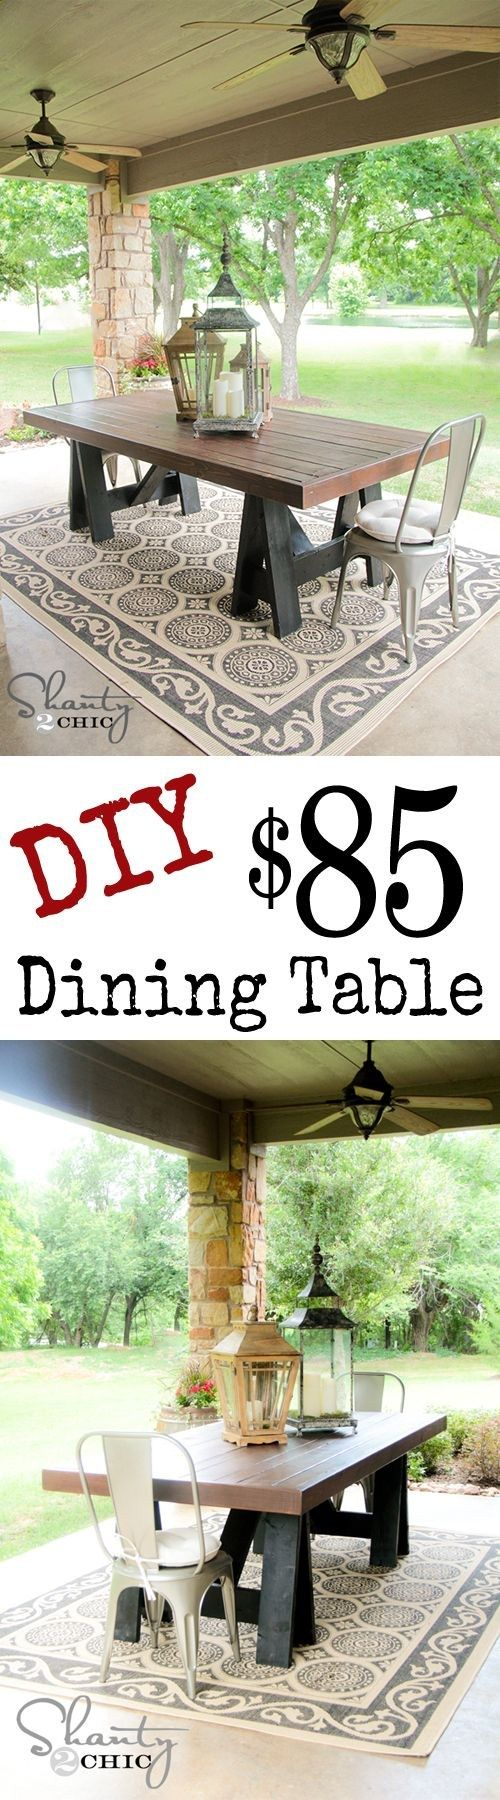 DIY Pottery Barn Dining Table! LOVE! http://@Shanti Paul Leeuwen Yell-2-Chic.com. Fabulous outdoor table for $85.00 and great step by step directions for us less than handy men  women.